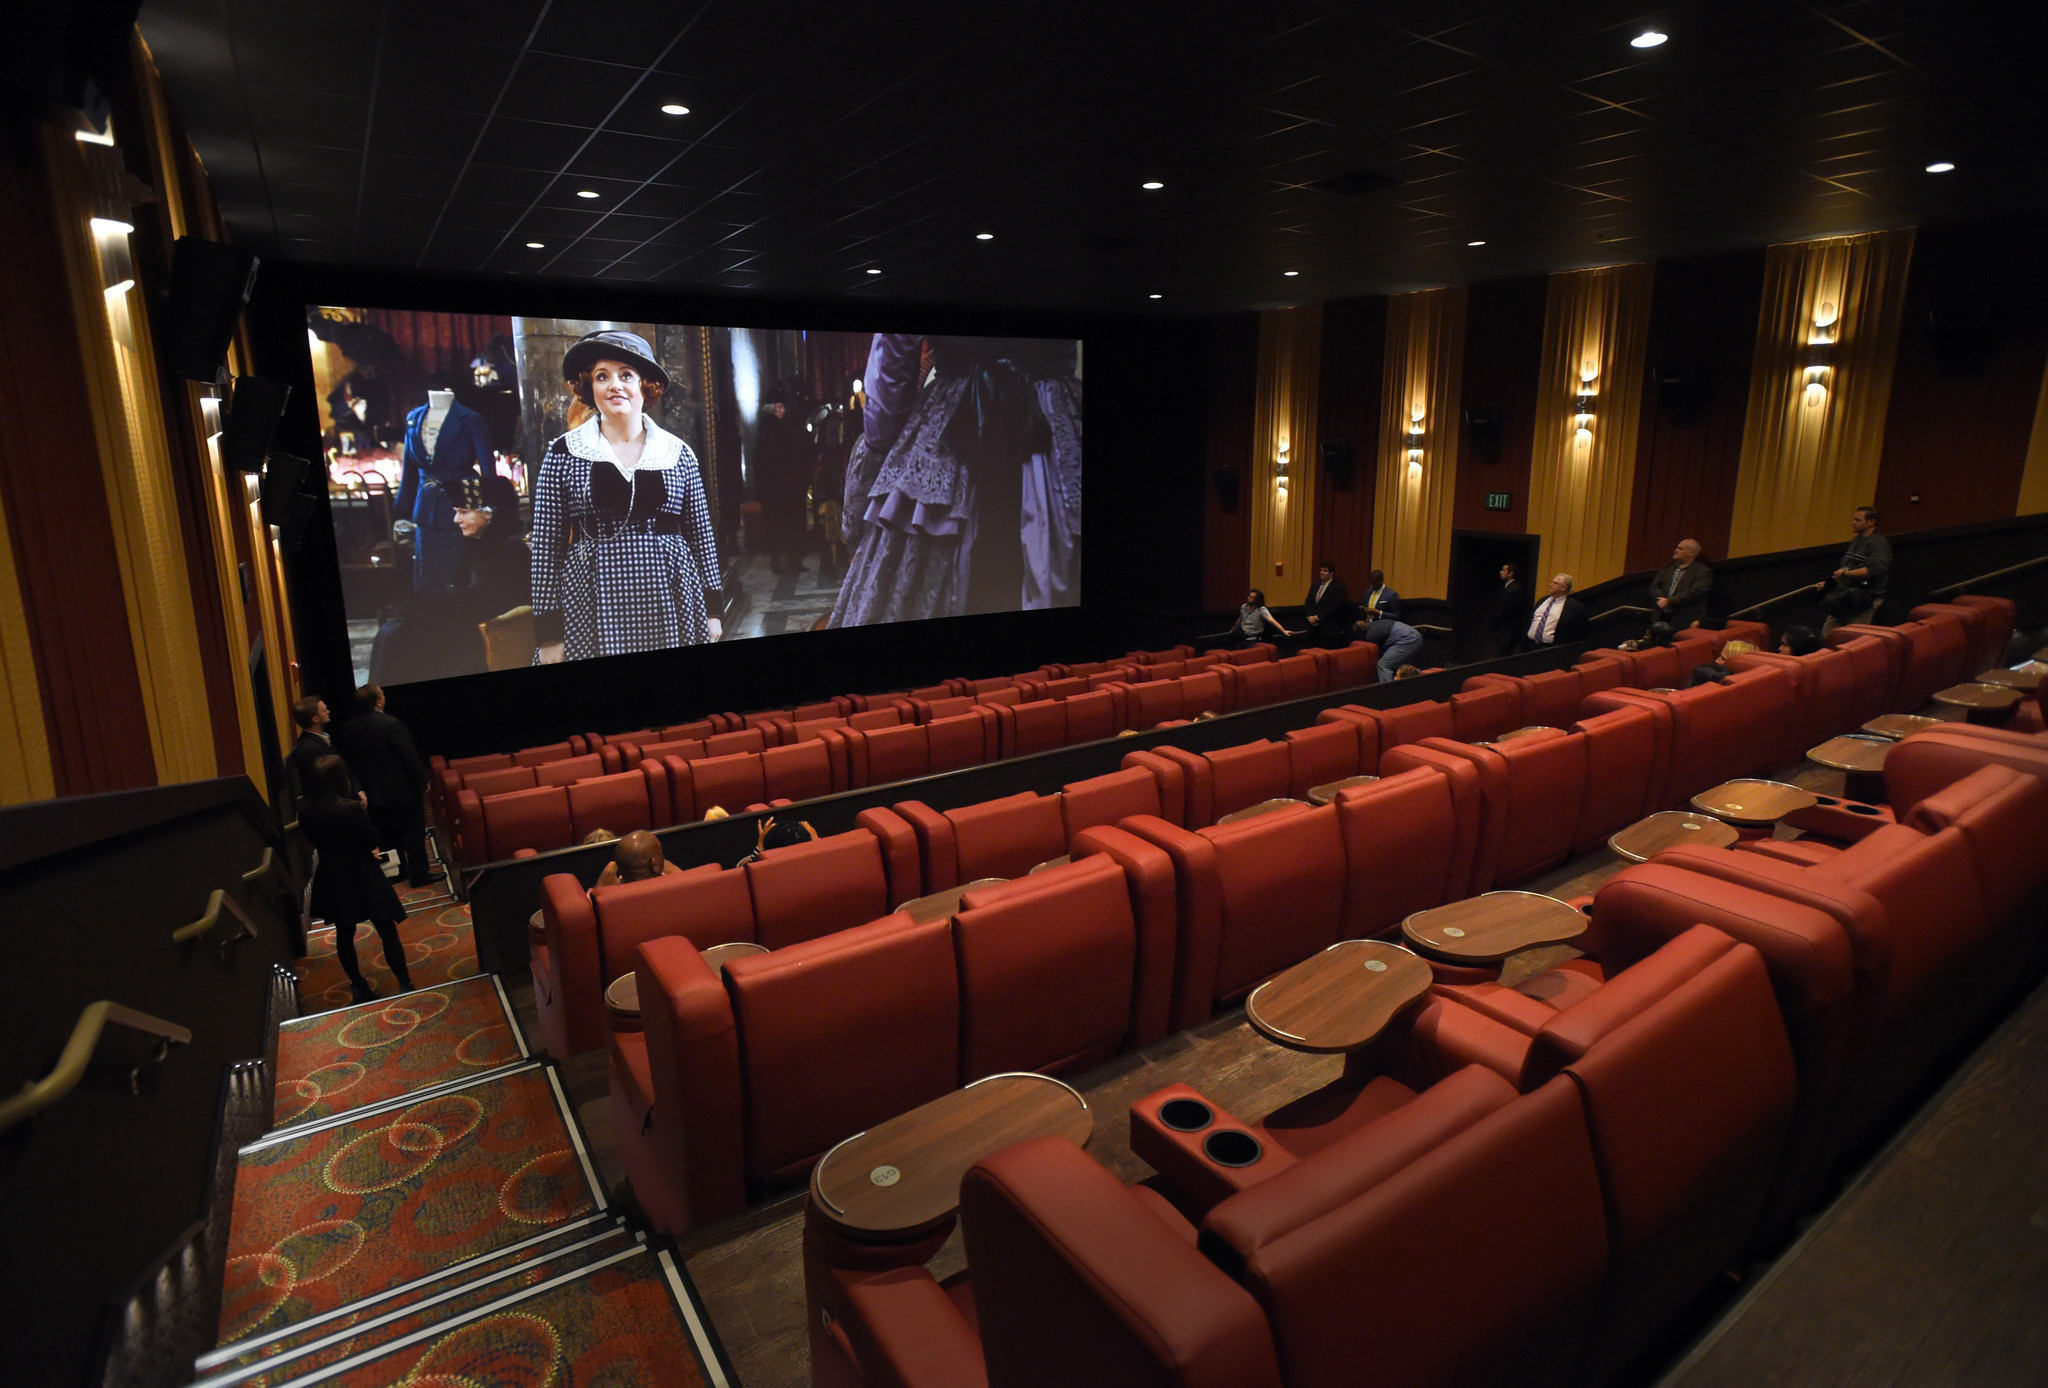 Find all the Carmike Cinemas Movie Theater Locations in the US. Fandango can help you find any Carmike Cinemas theater, provide movie times and tickets.